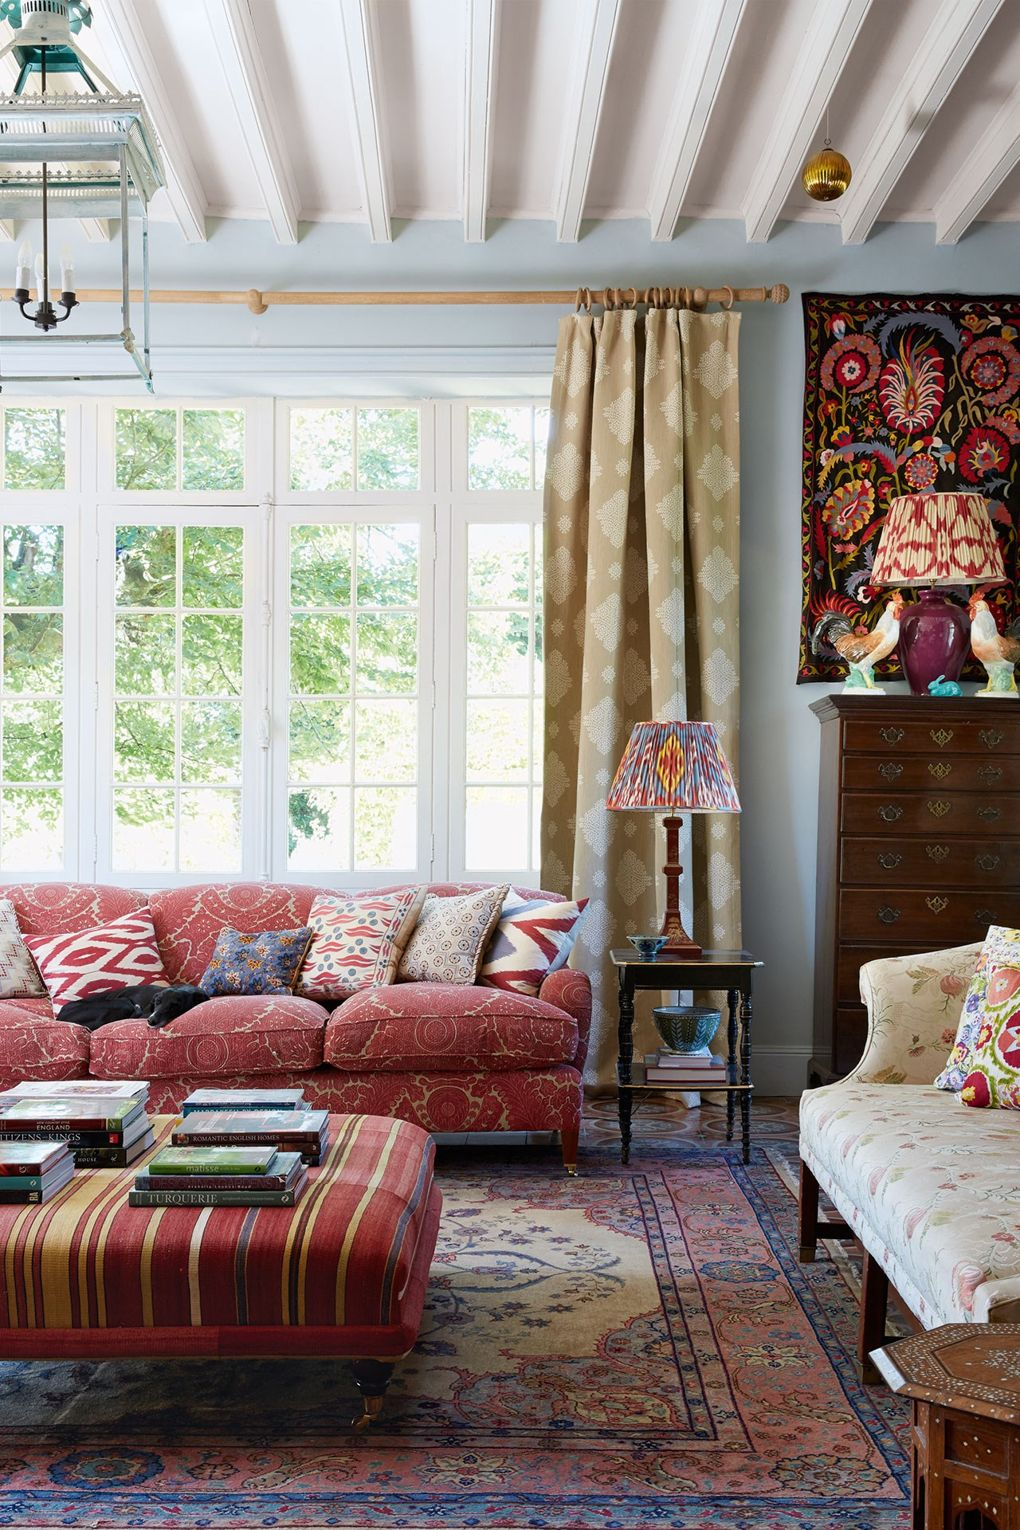 Susan's French Country home